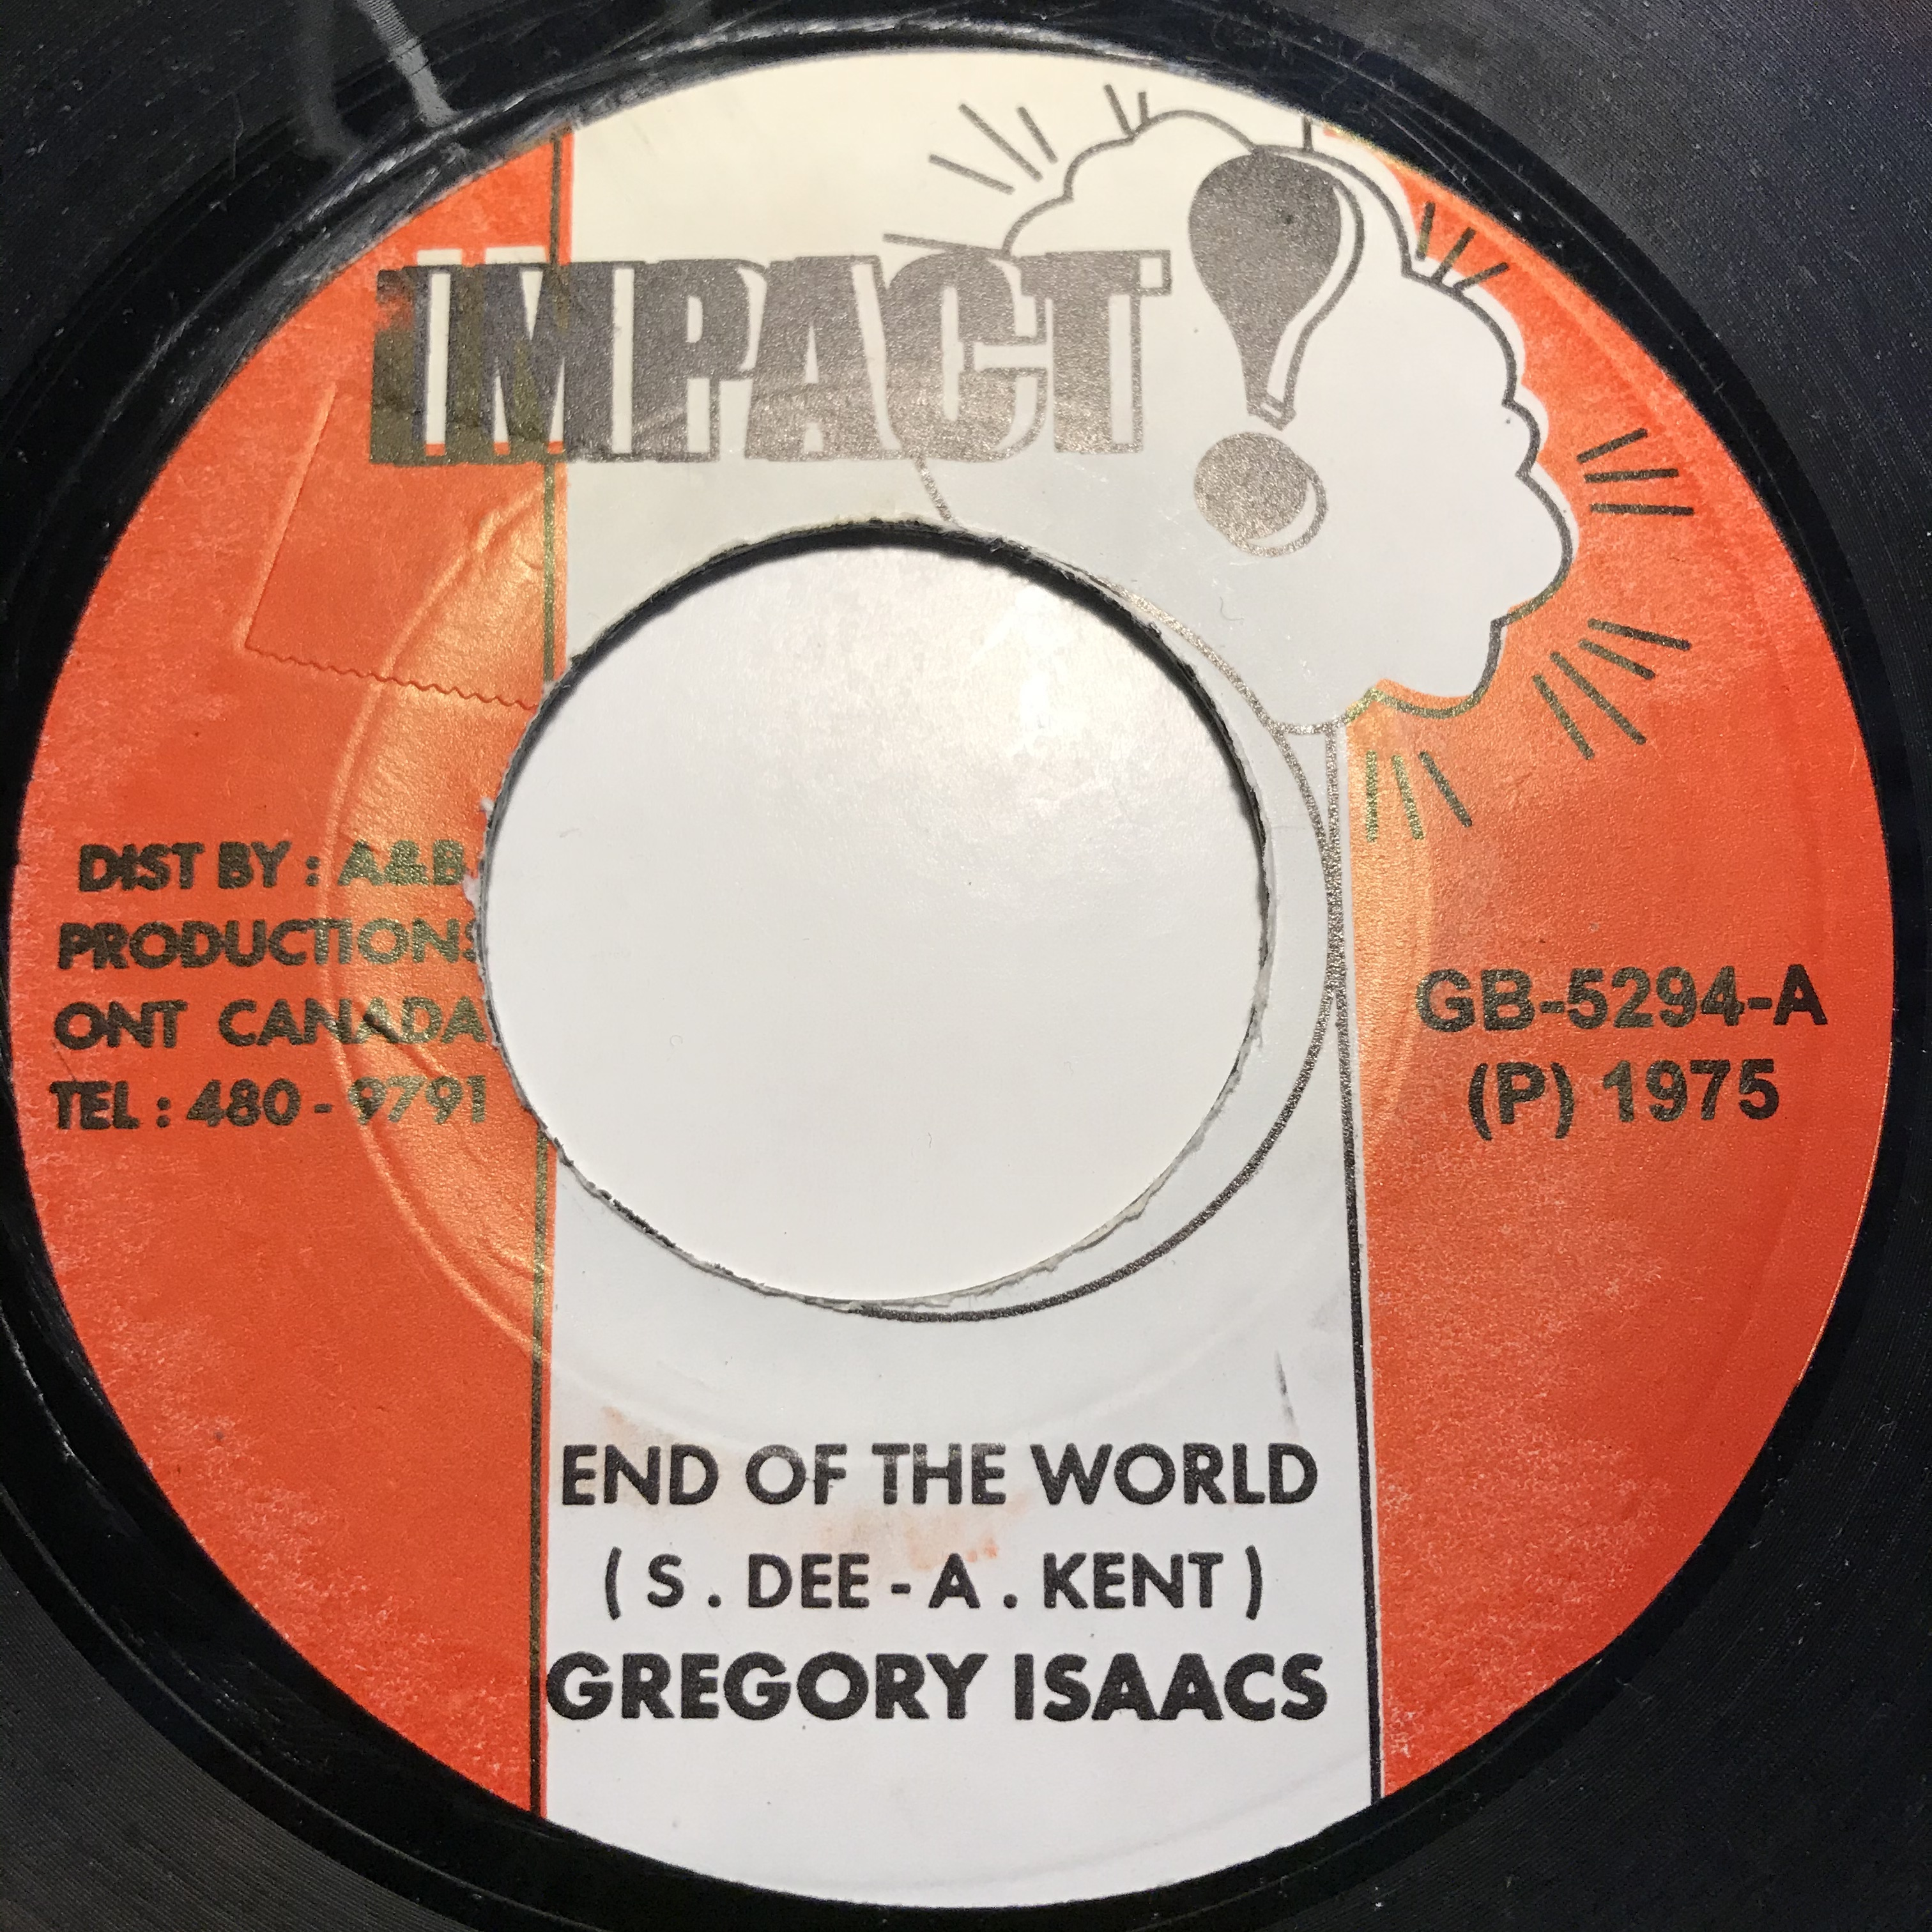 Gregory Isaacs - End Of The World【7-10824】